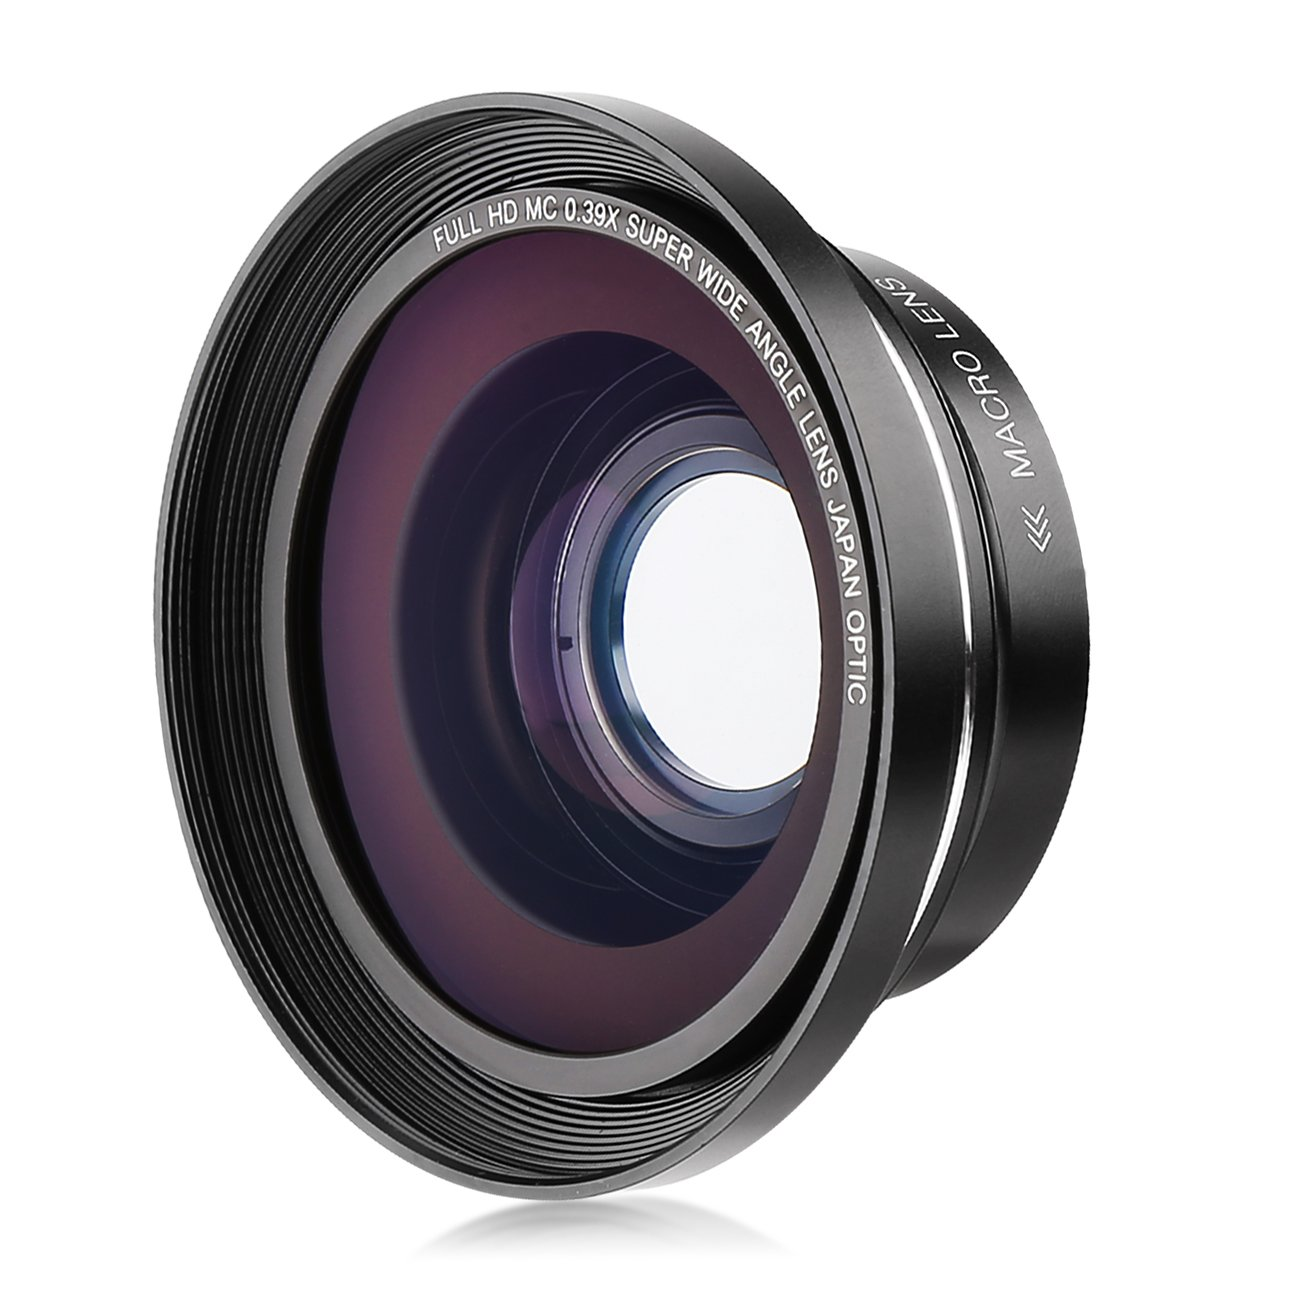 Kenuo 37mm 0.39X Full HD Wide Angle Macro Lens with 37mm to 30mm Lens Adapter for Digital Video Camera Camcorder by Kenuo